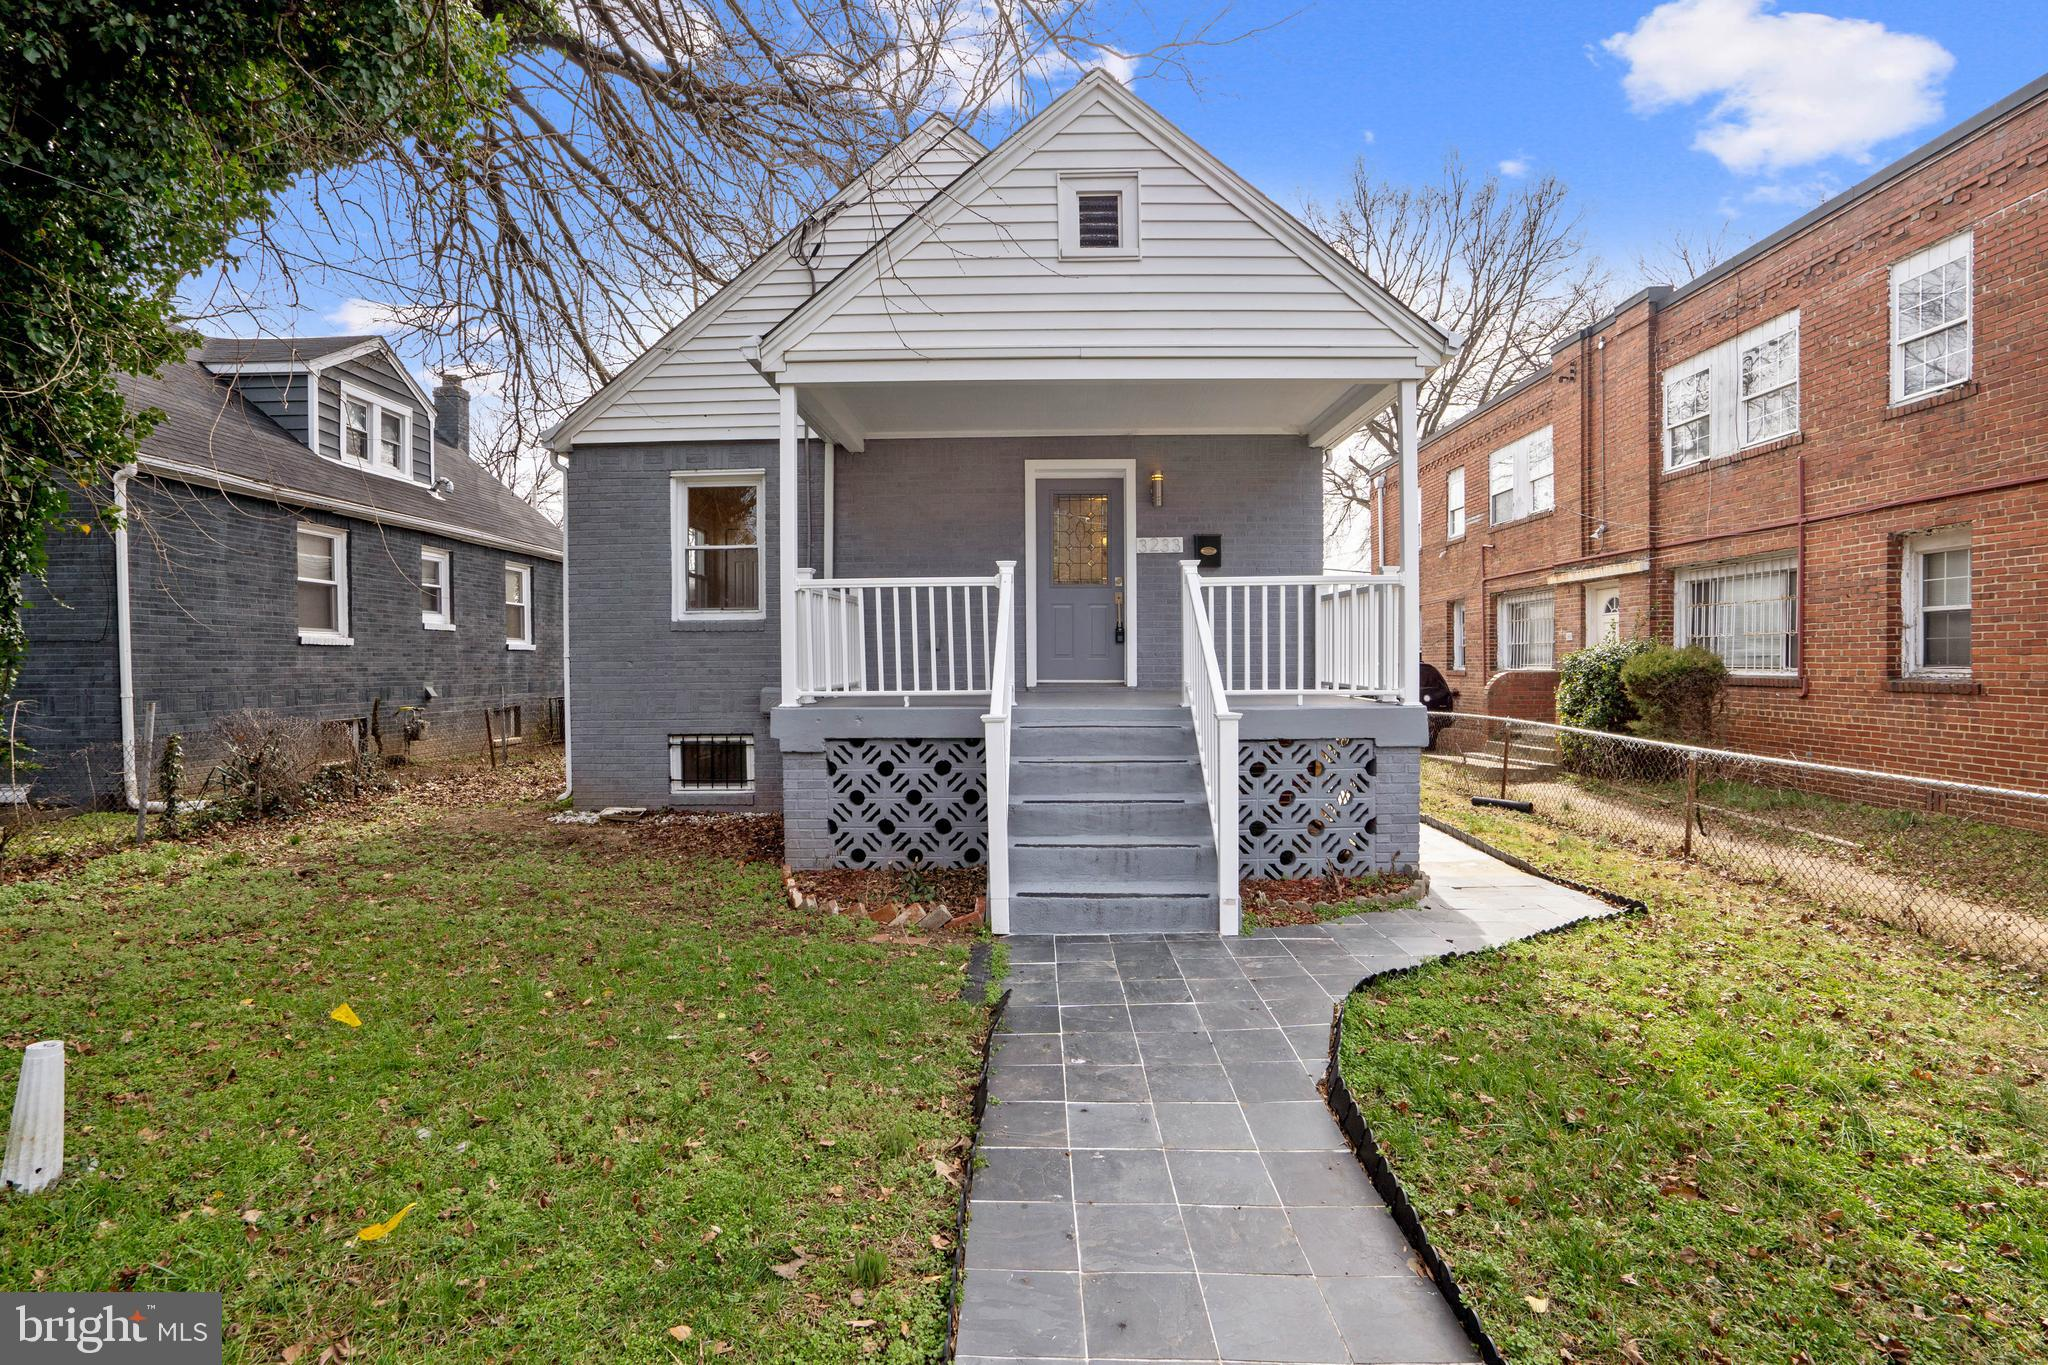 OPEN HOUSE - 2/22/20 @ 2:00pm - 4:00pm.  Beautiful  light filled home in great location, open floor